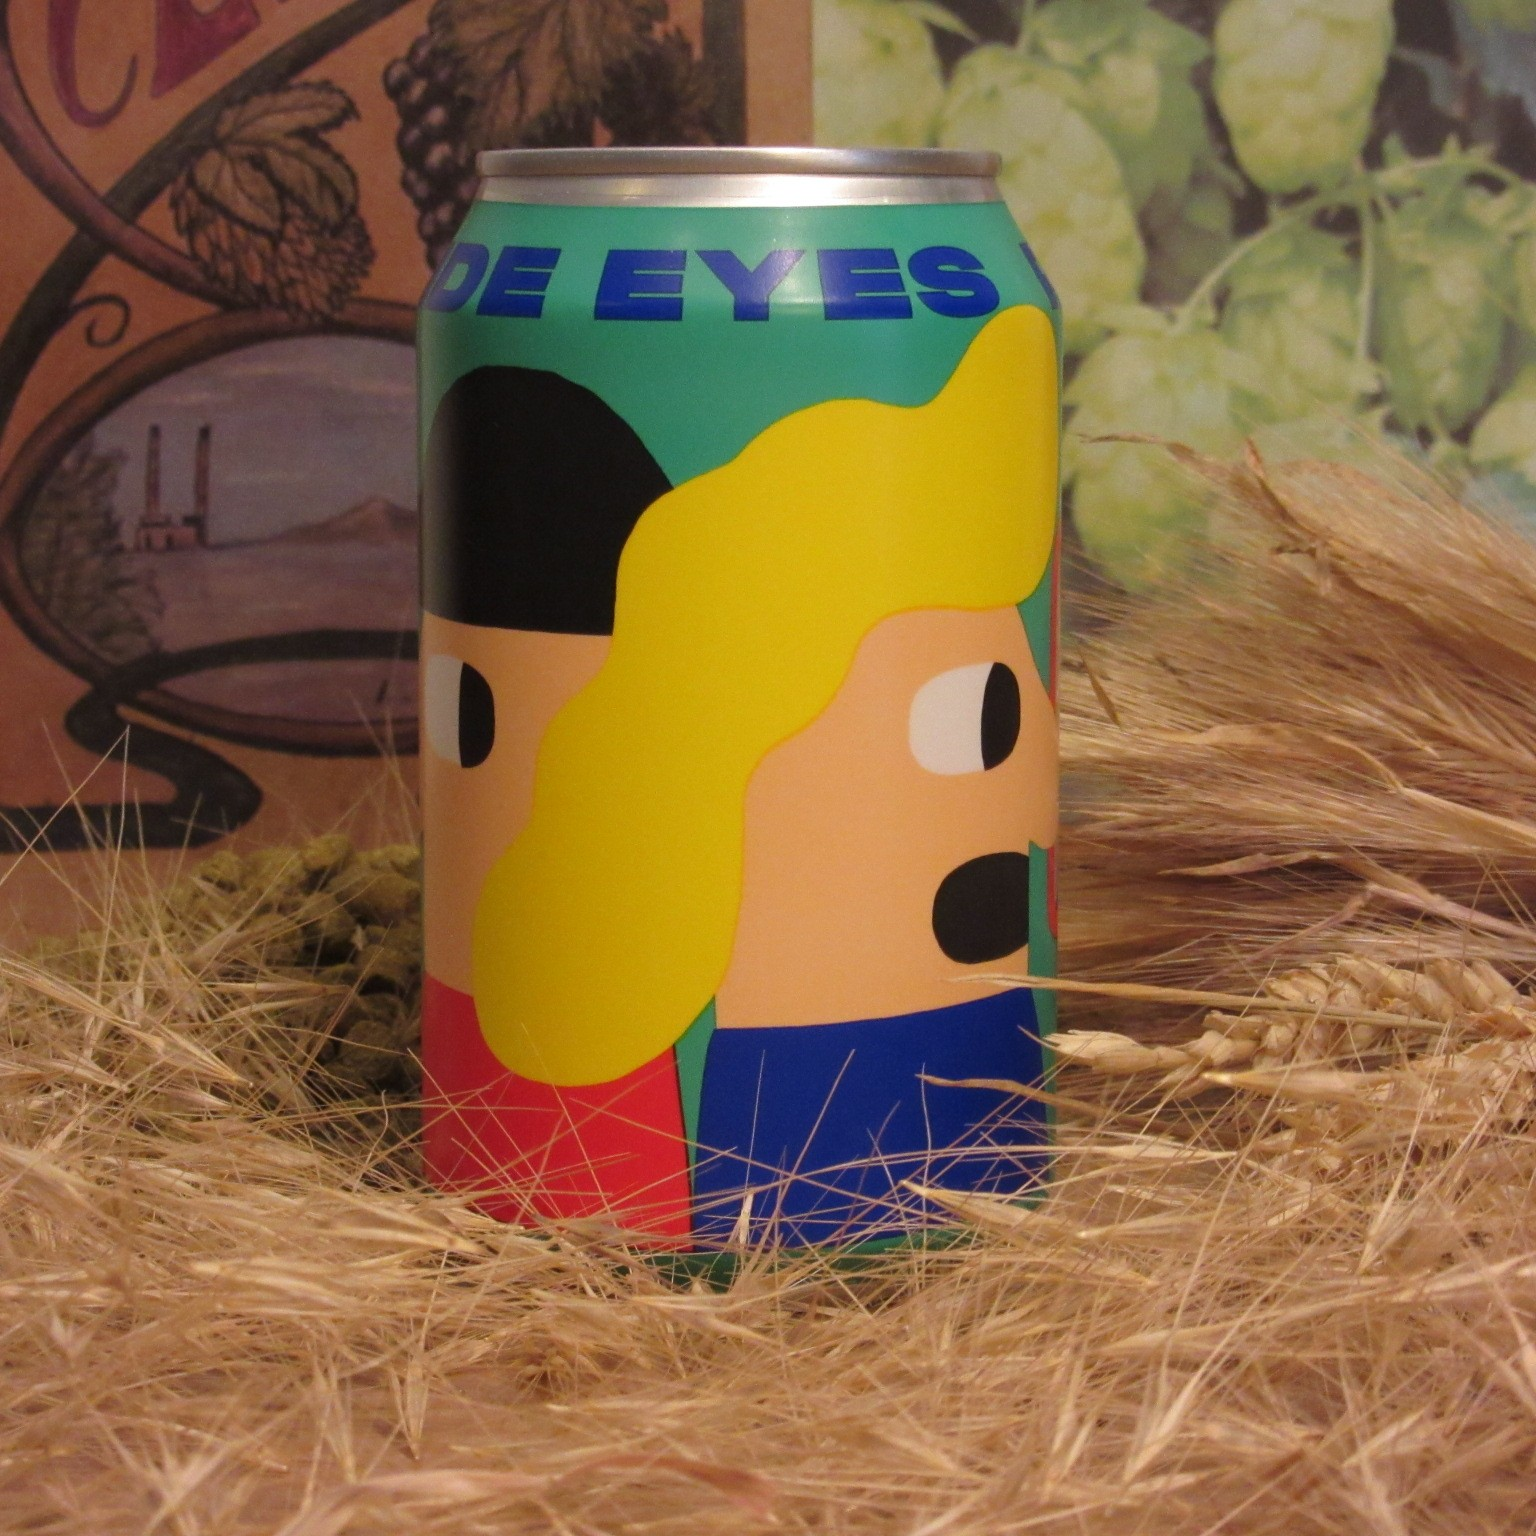 Mikkeller Side Eyes Pale Ale